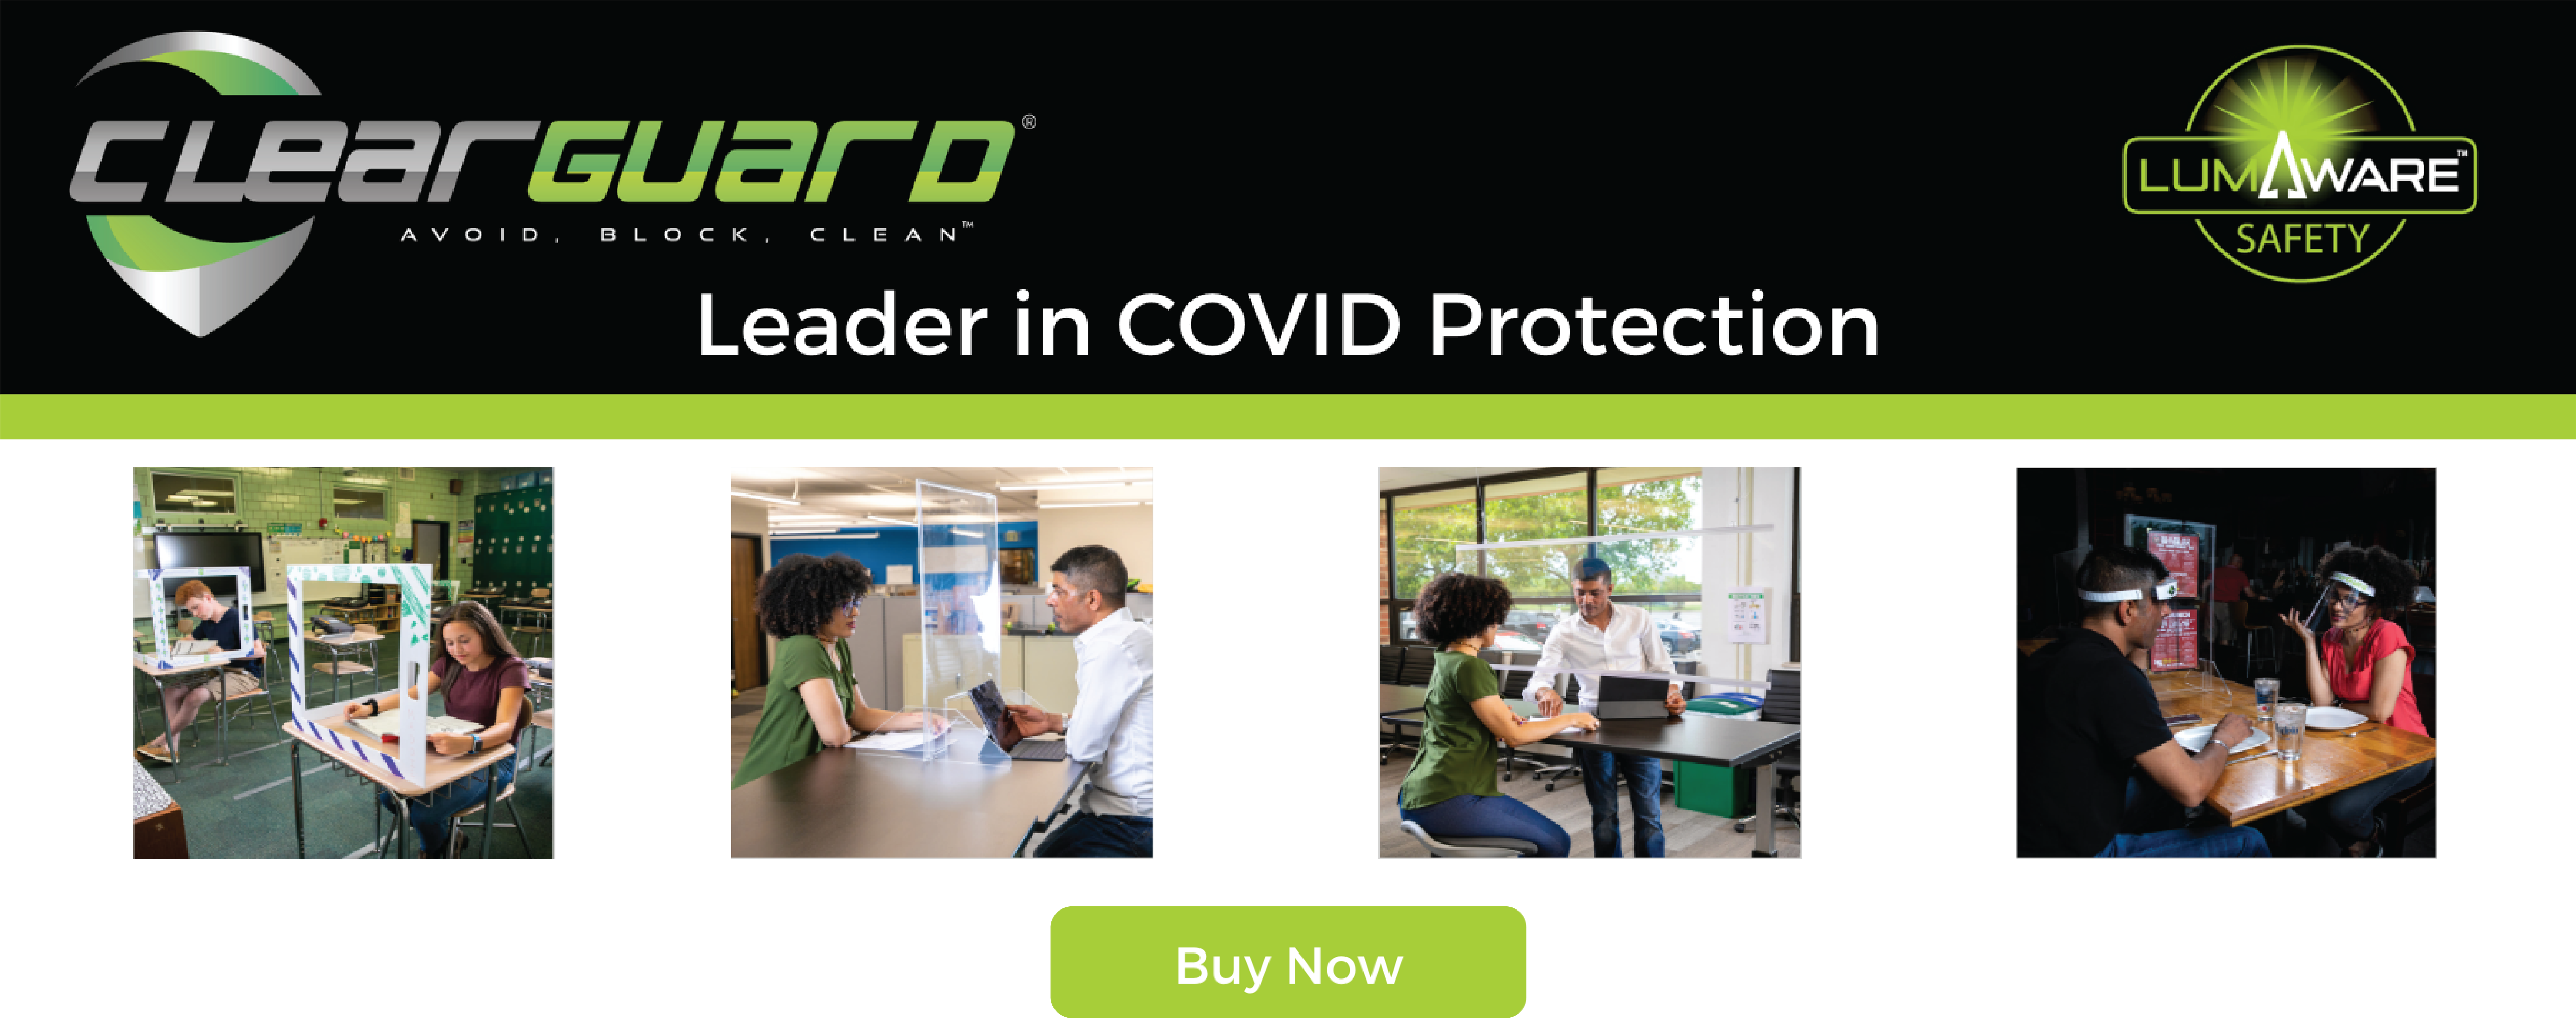 Buy Now ClearGuard Products Banner Transparent